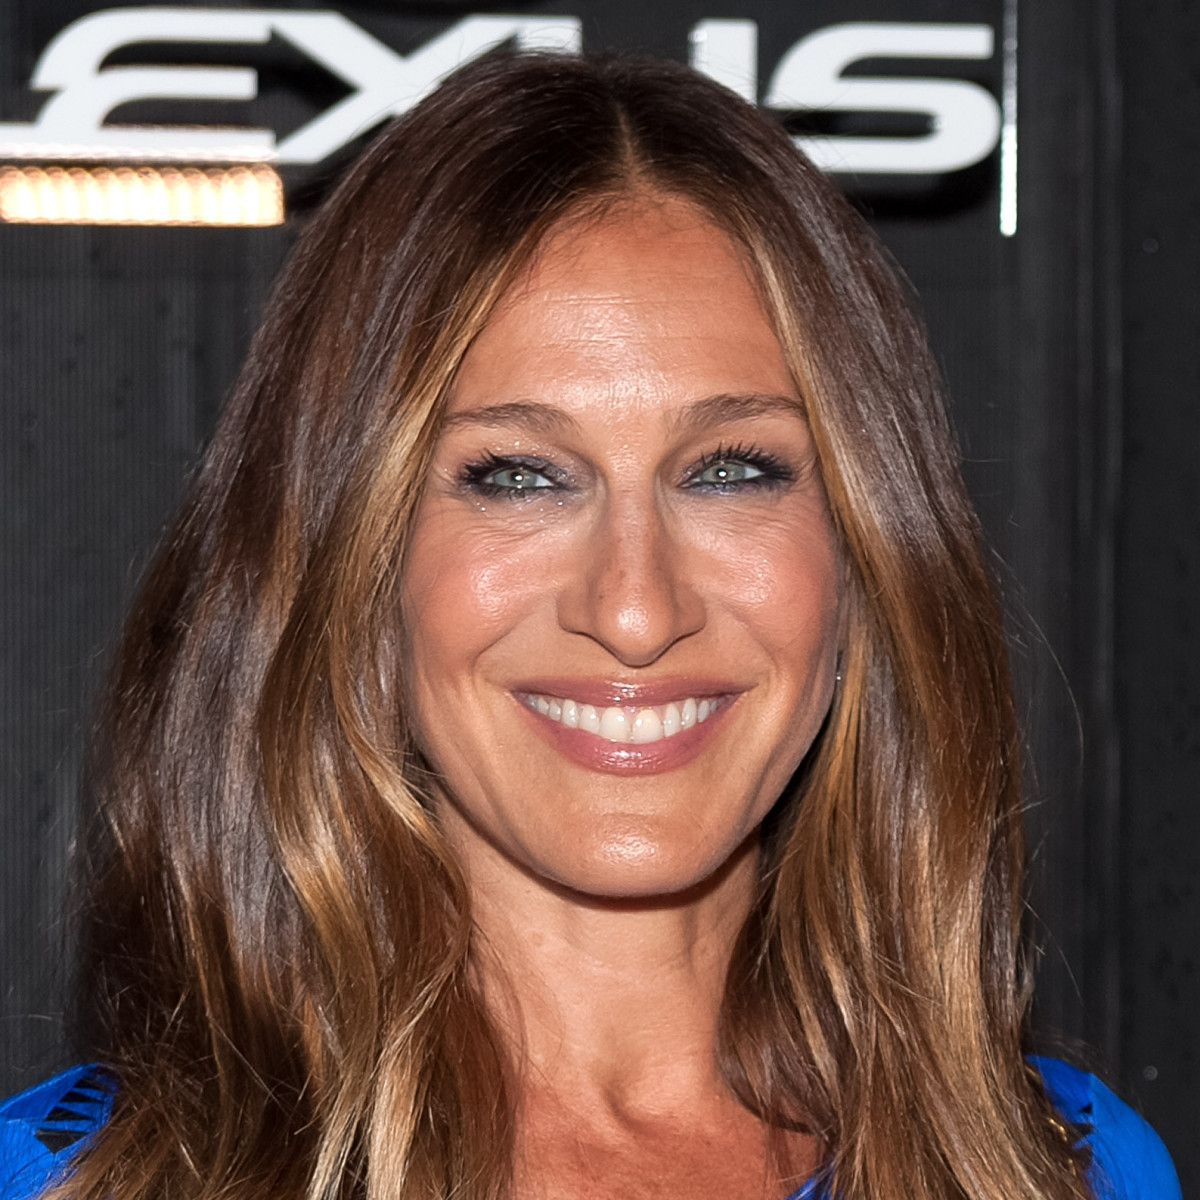 Sarah Jessica Parker nude (24 foto and video), Pussy, Leaked, Boobs, underwear 2006